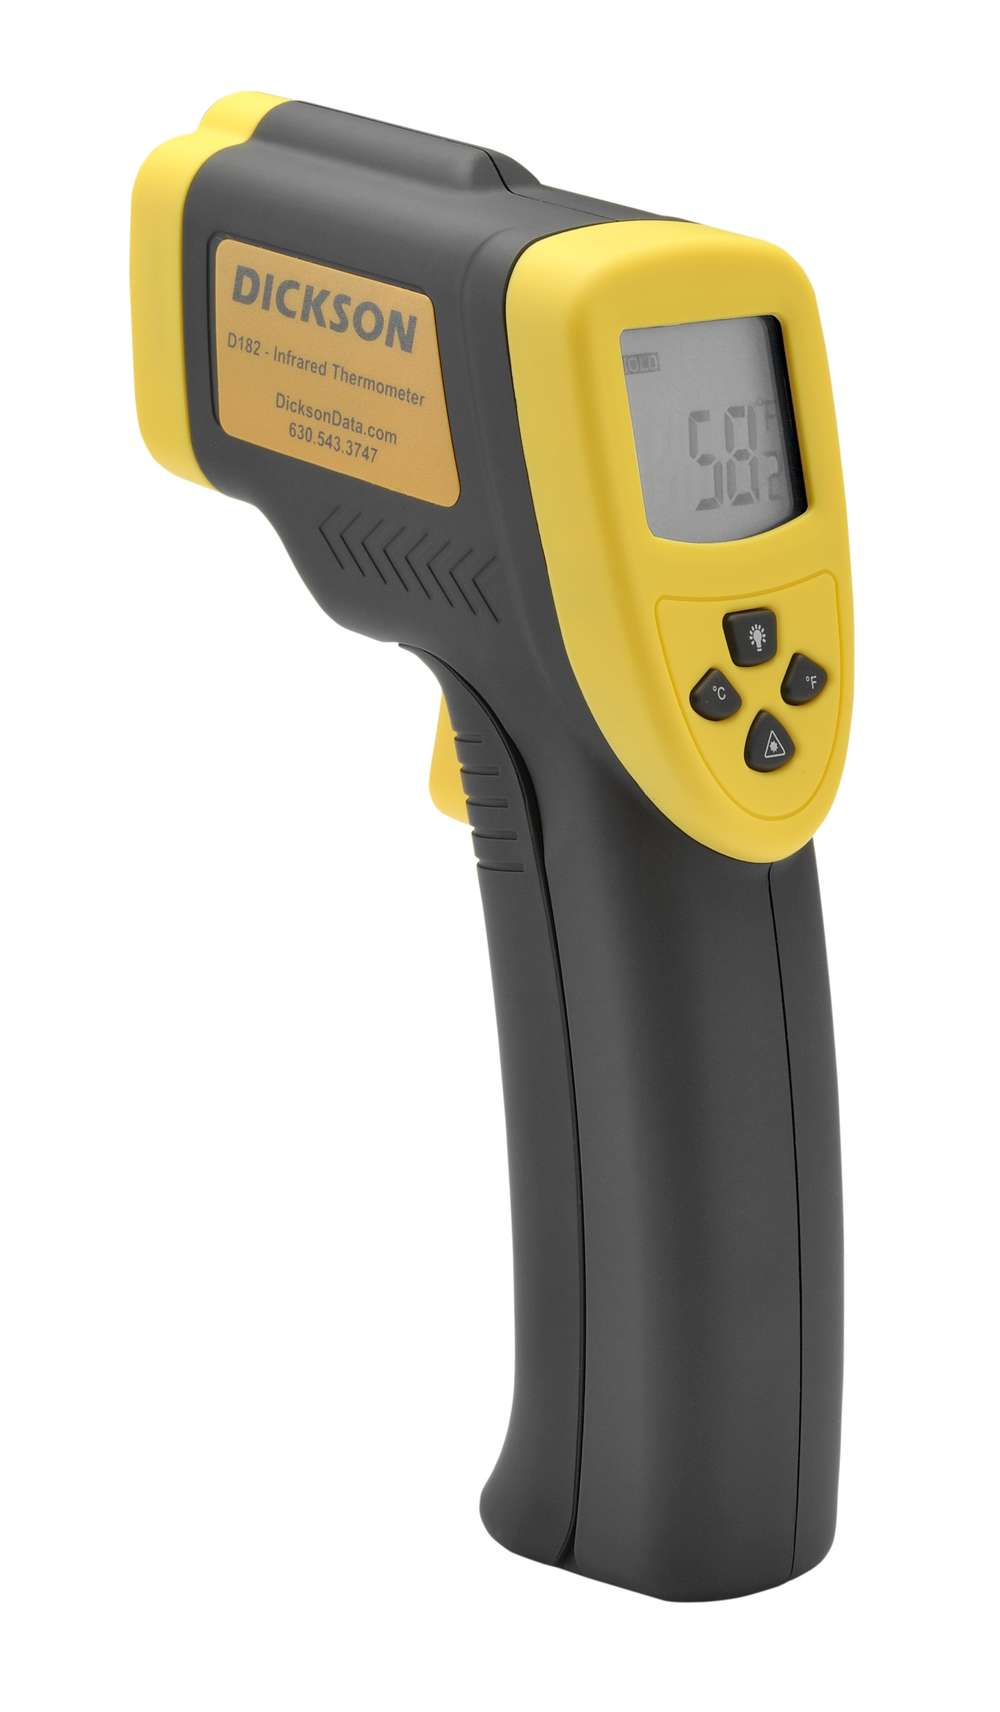 D182 infrared thermometer 12428